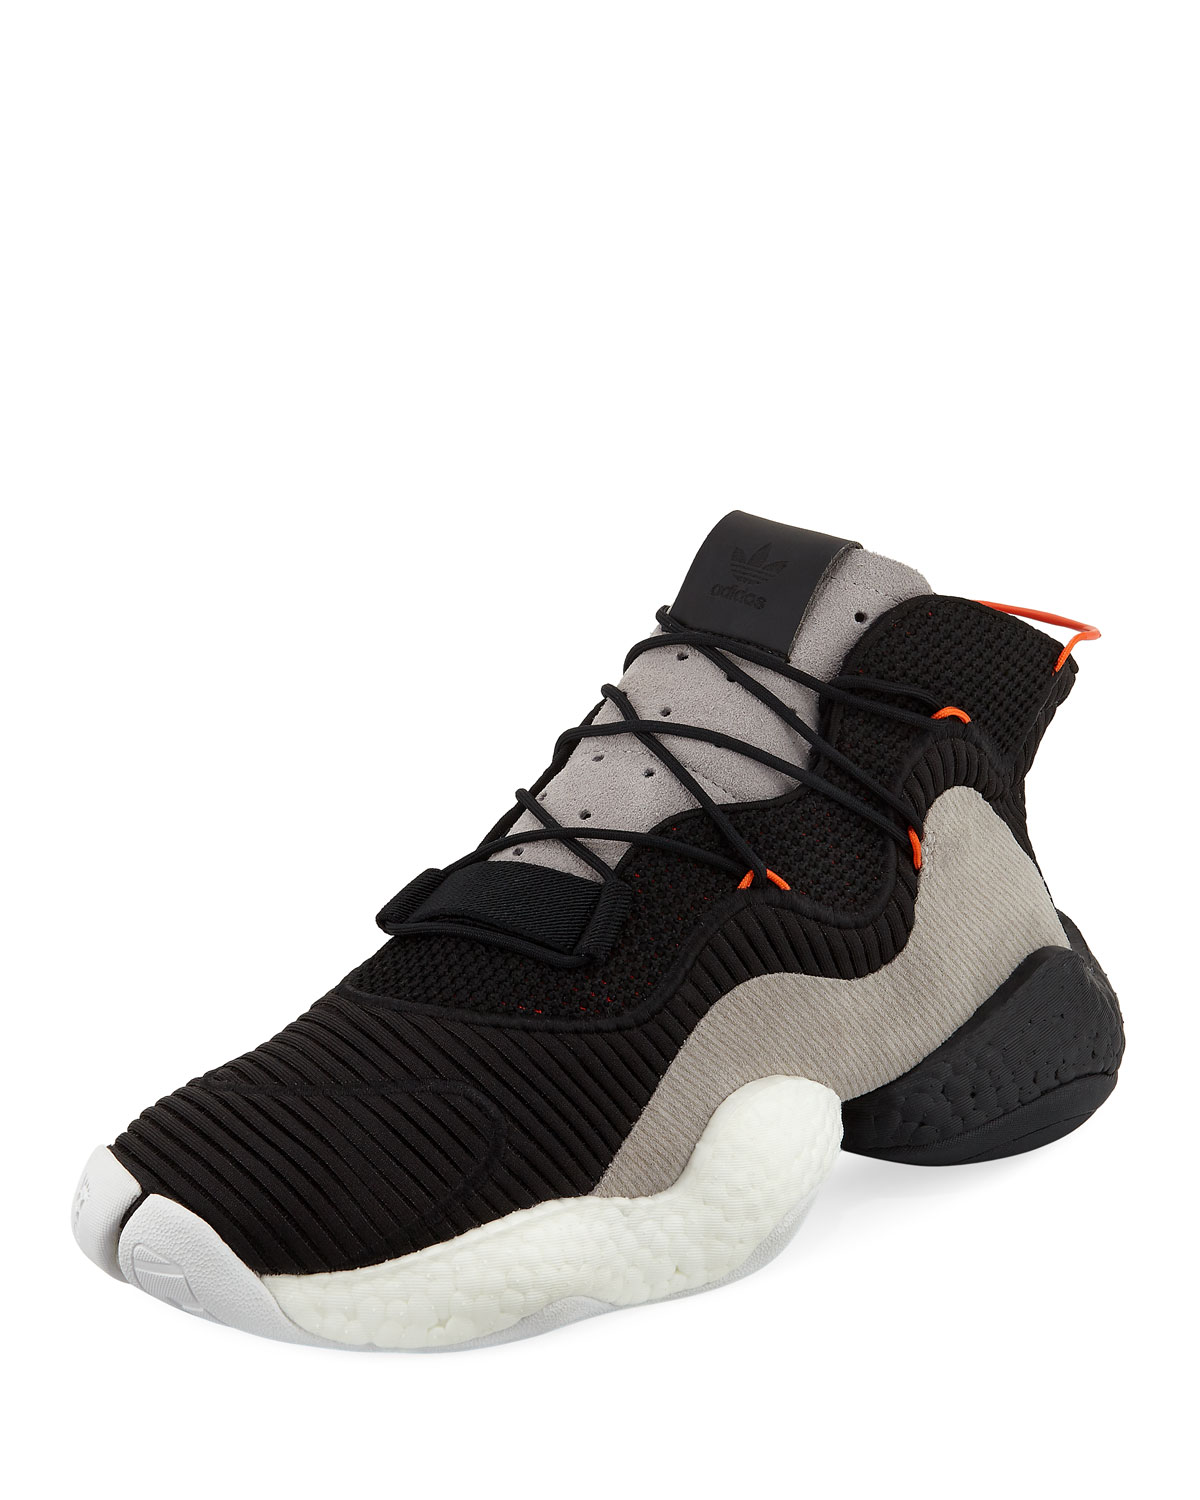 Adidas Crazy Byw Mixed Fabric Sneaker Black Neiman Marcus